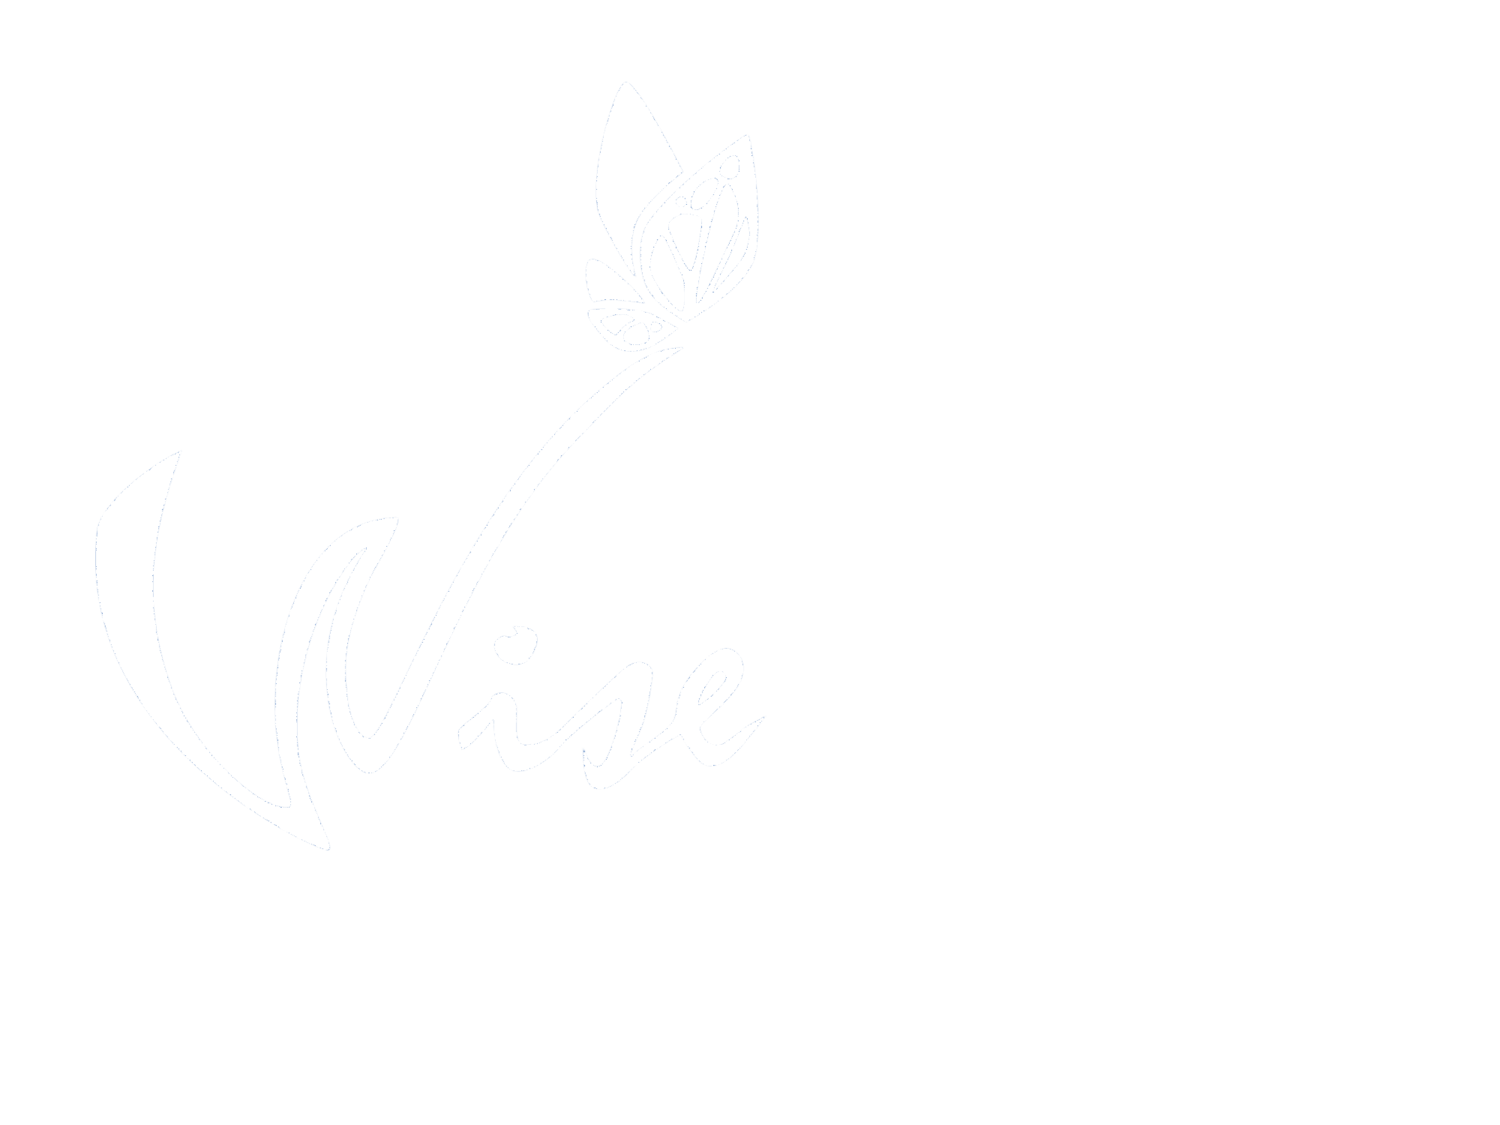 Women's Initiative for Self Empowerment